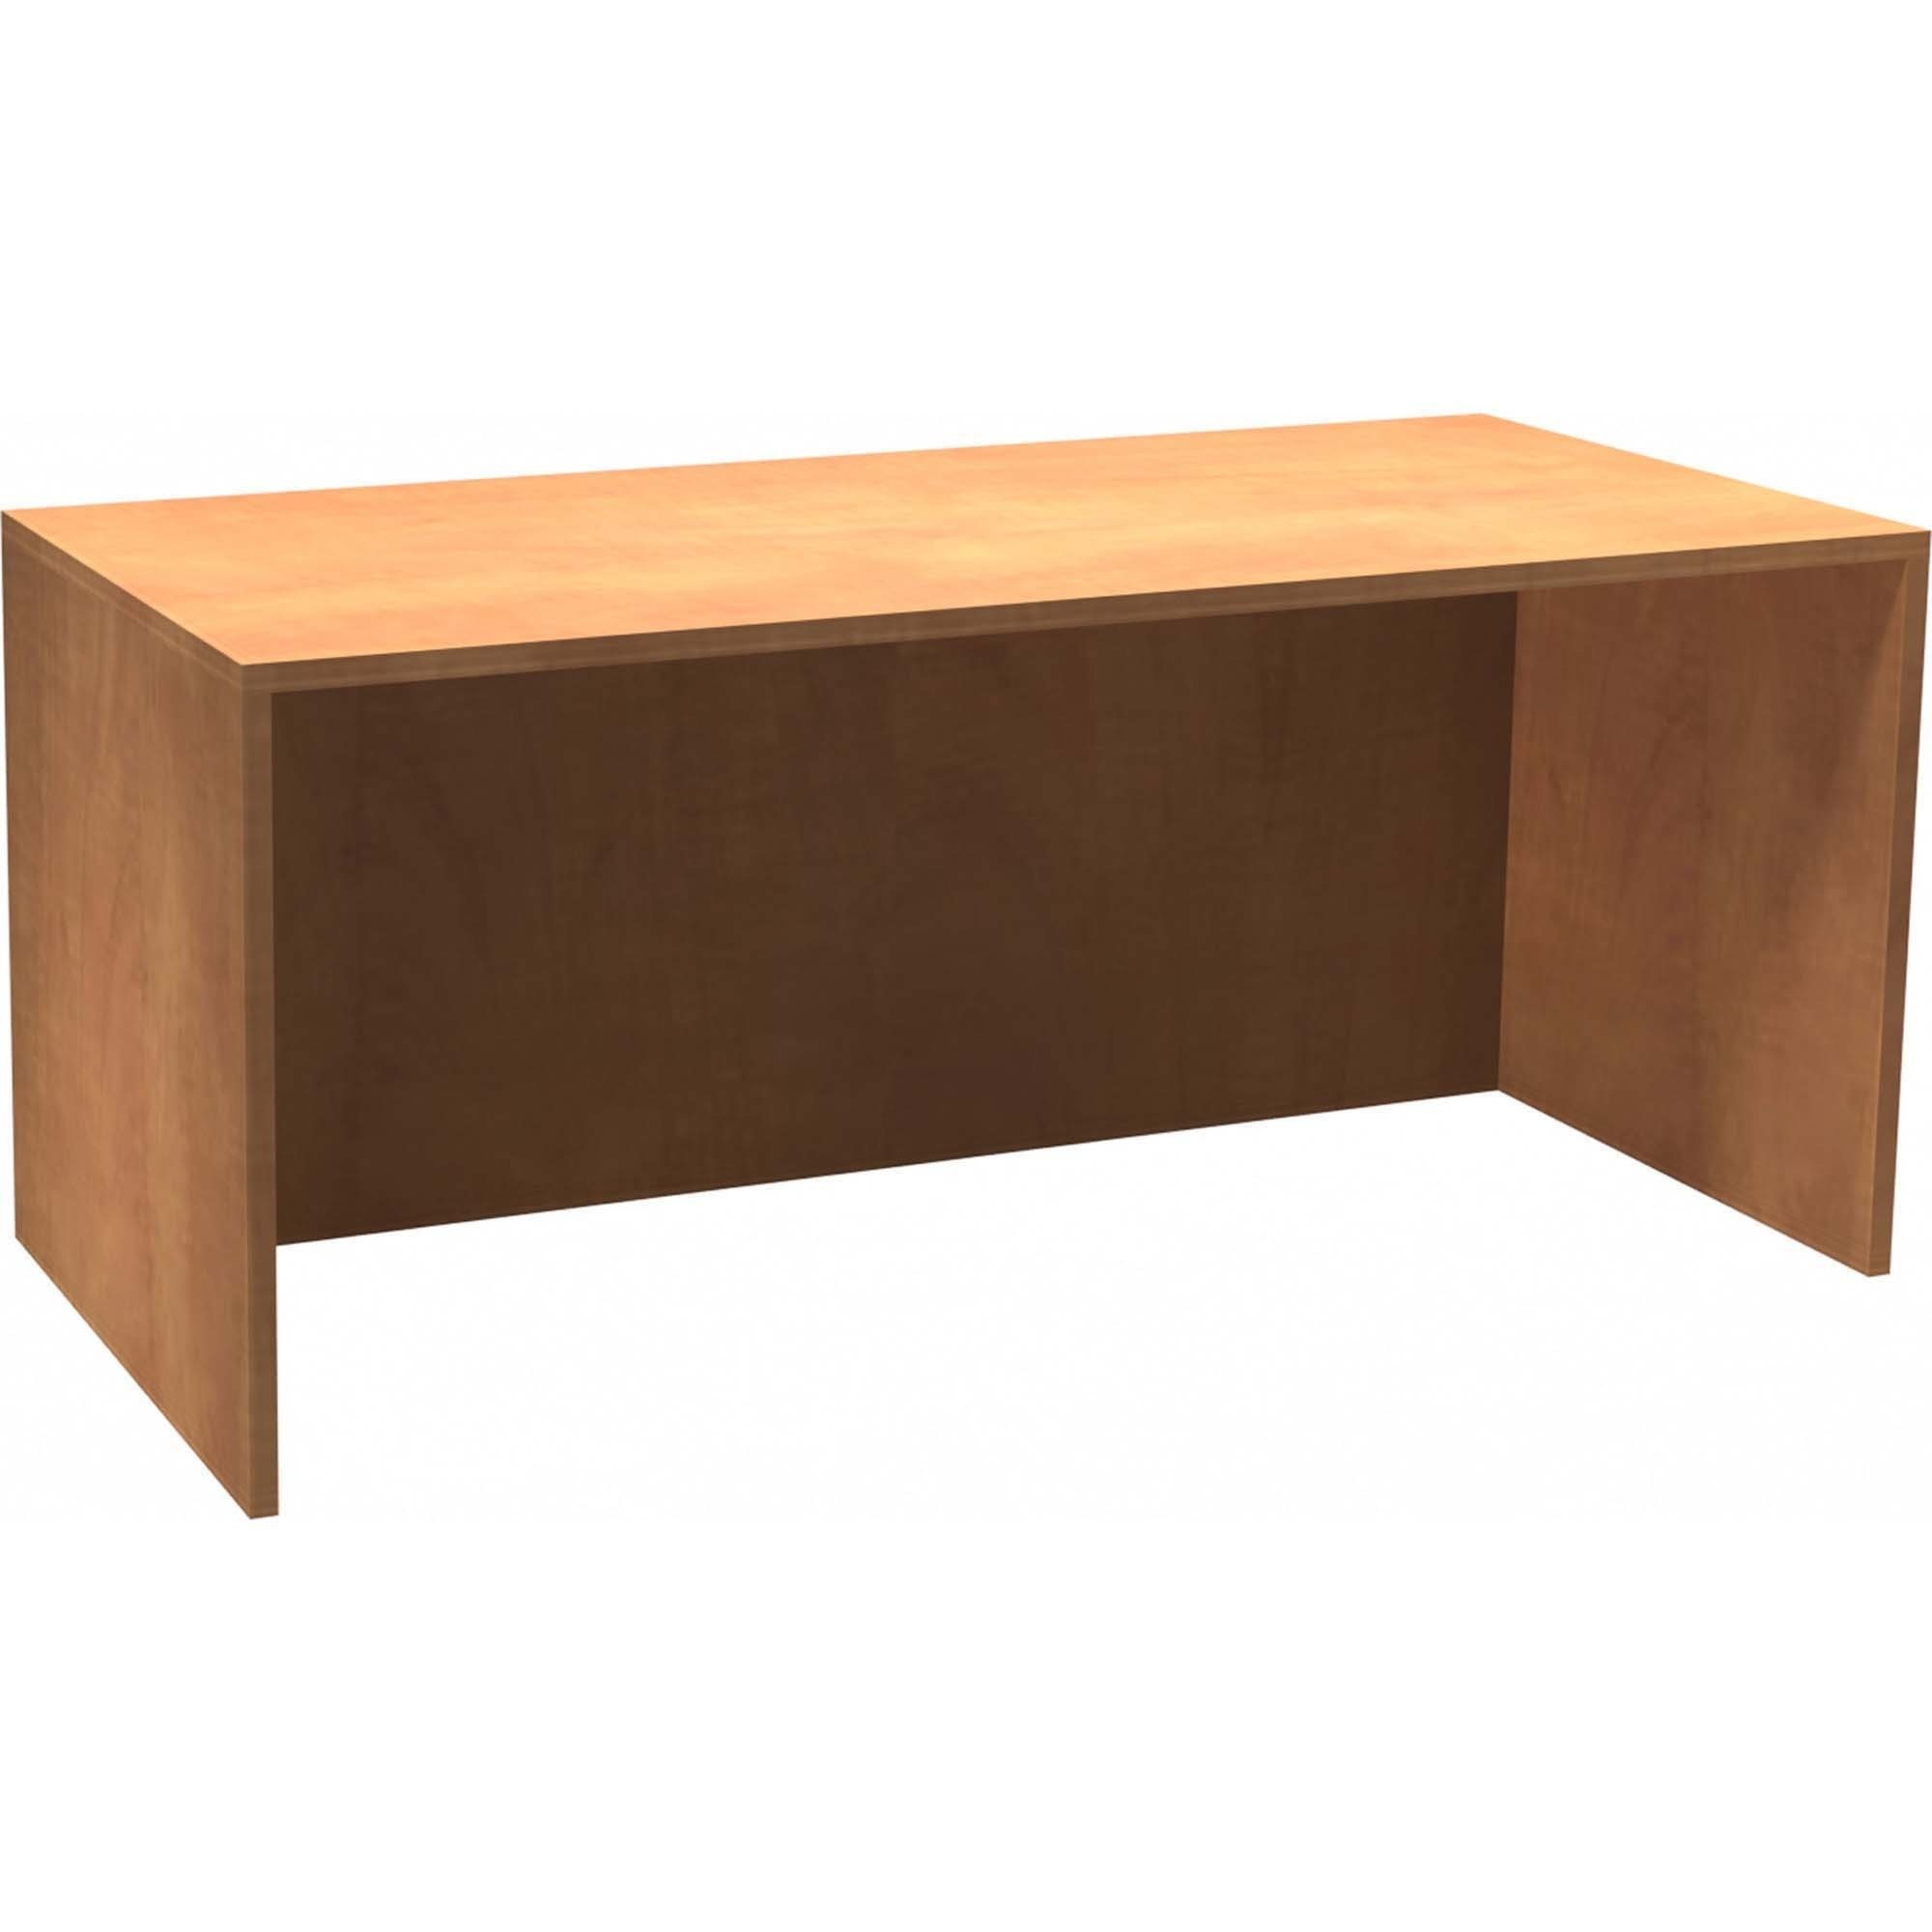 Heartwood Innovations Sugar Maple Laminated Desk Suites 65 X 29 5 Top Material Wood Grain Particleboard Polyvinyl Chloride Pvc